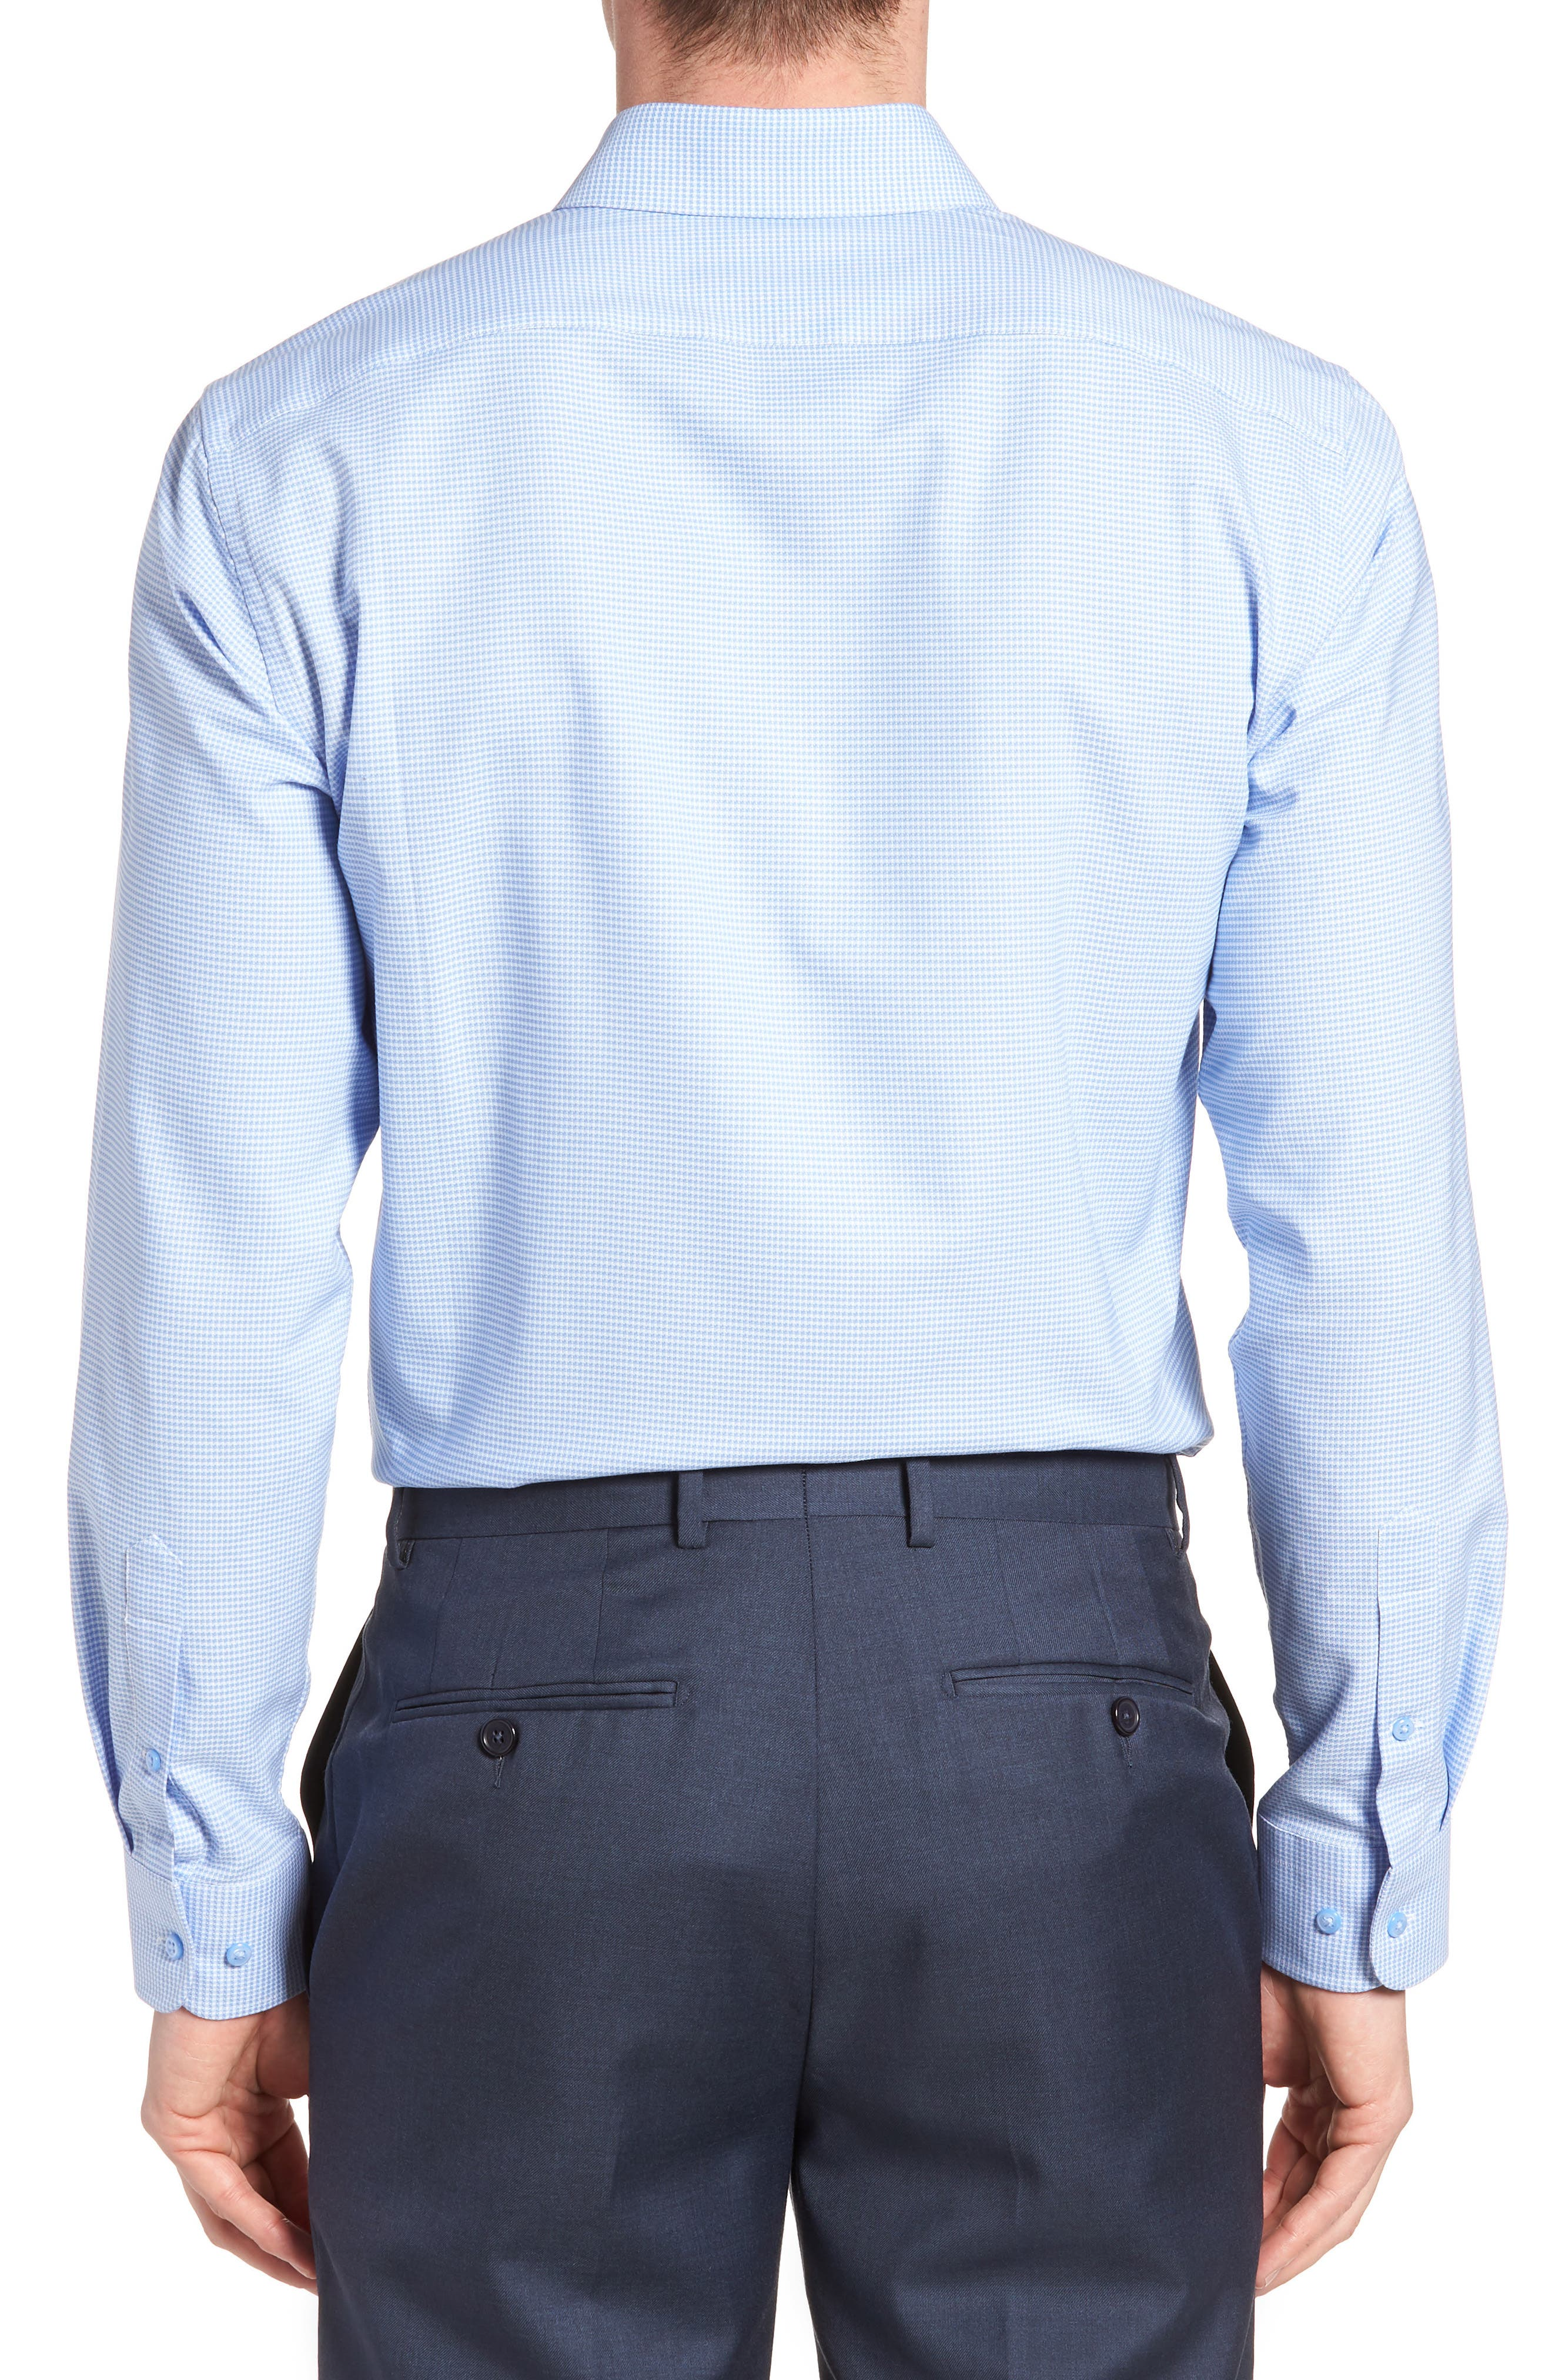 Tech-Smart Trim Fit Stretch Texture Dress Shirt,                             Alternate thumbnail 3, color,                             Blue Hydrangea